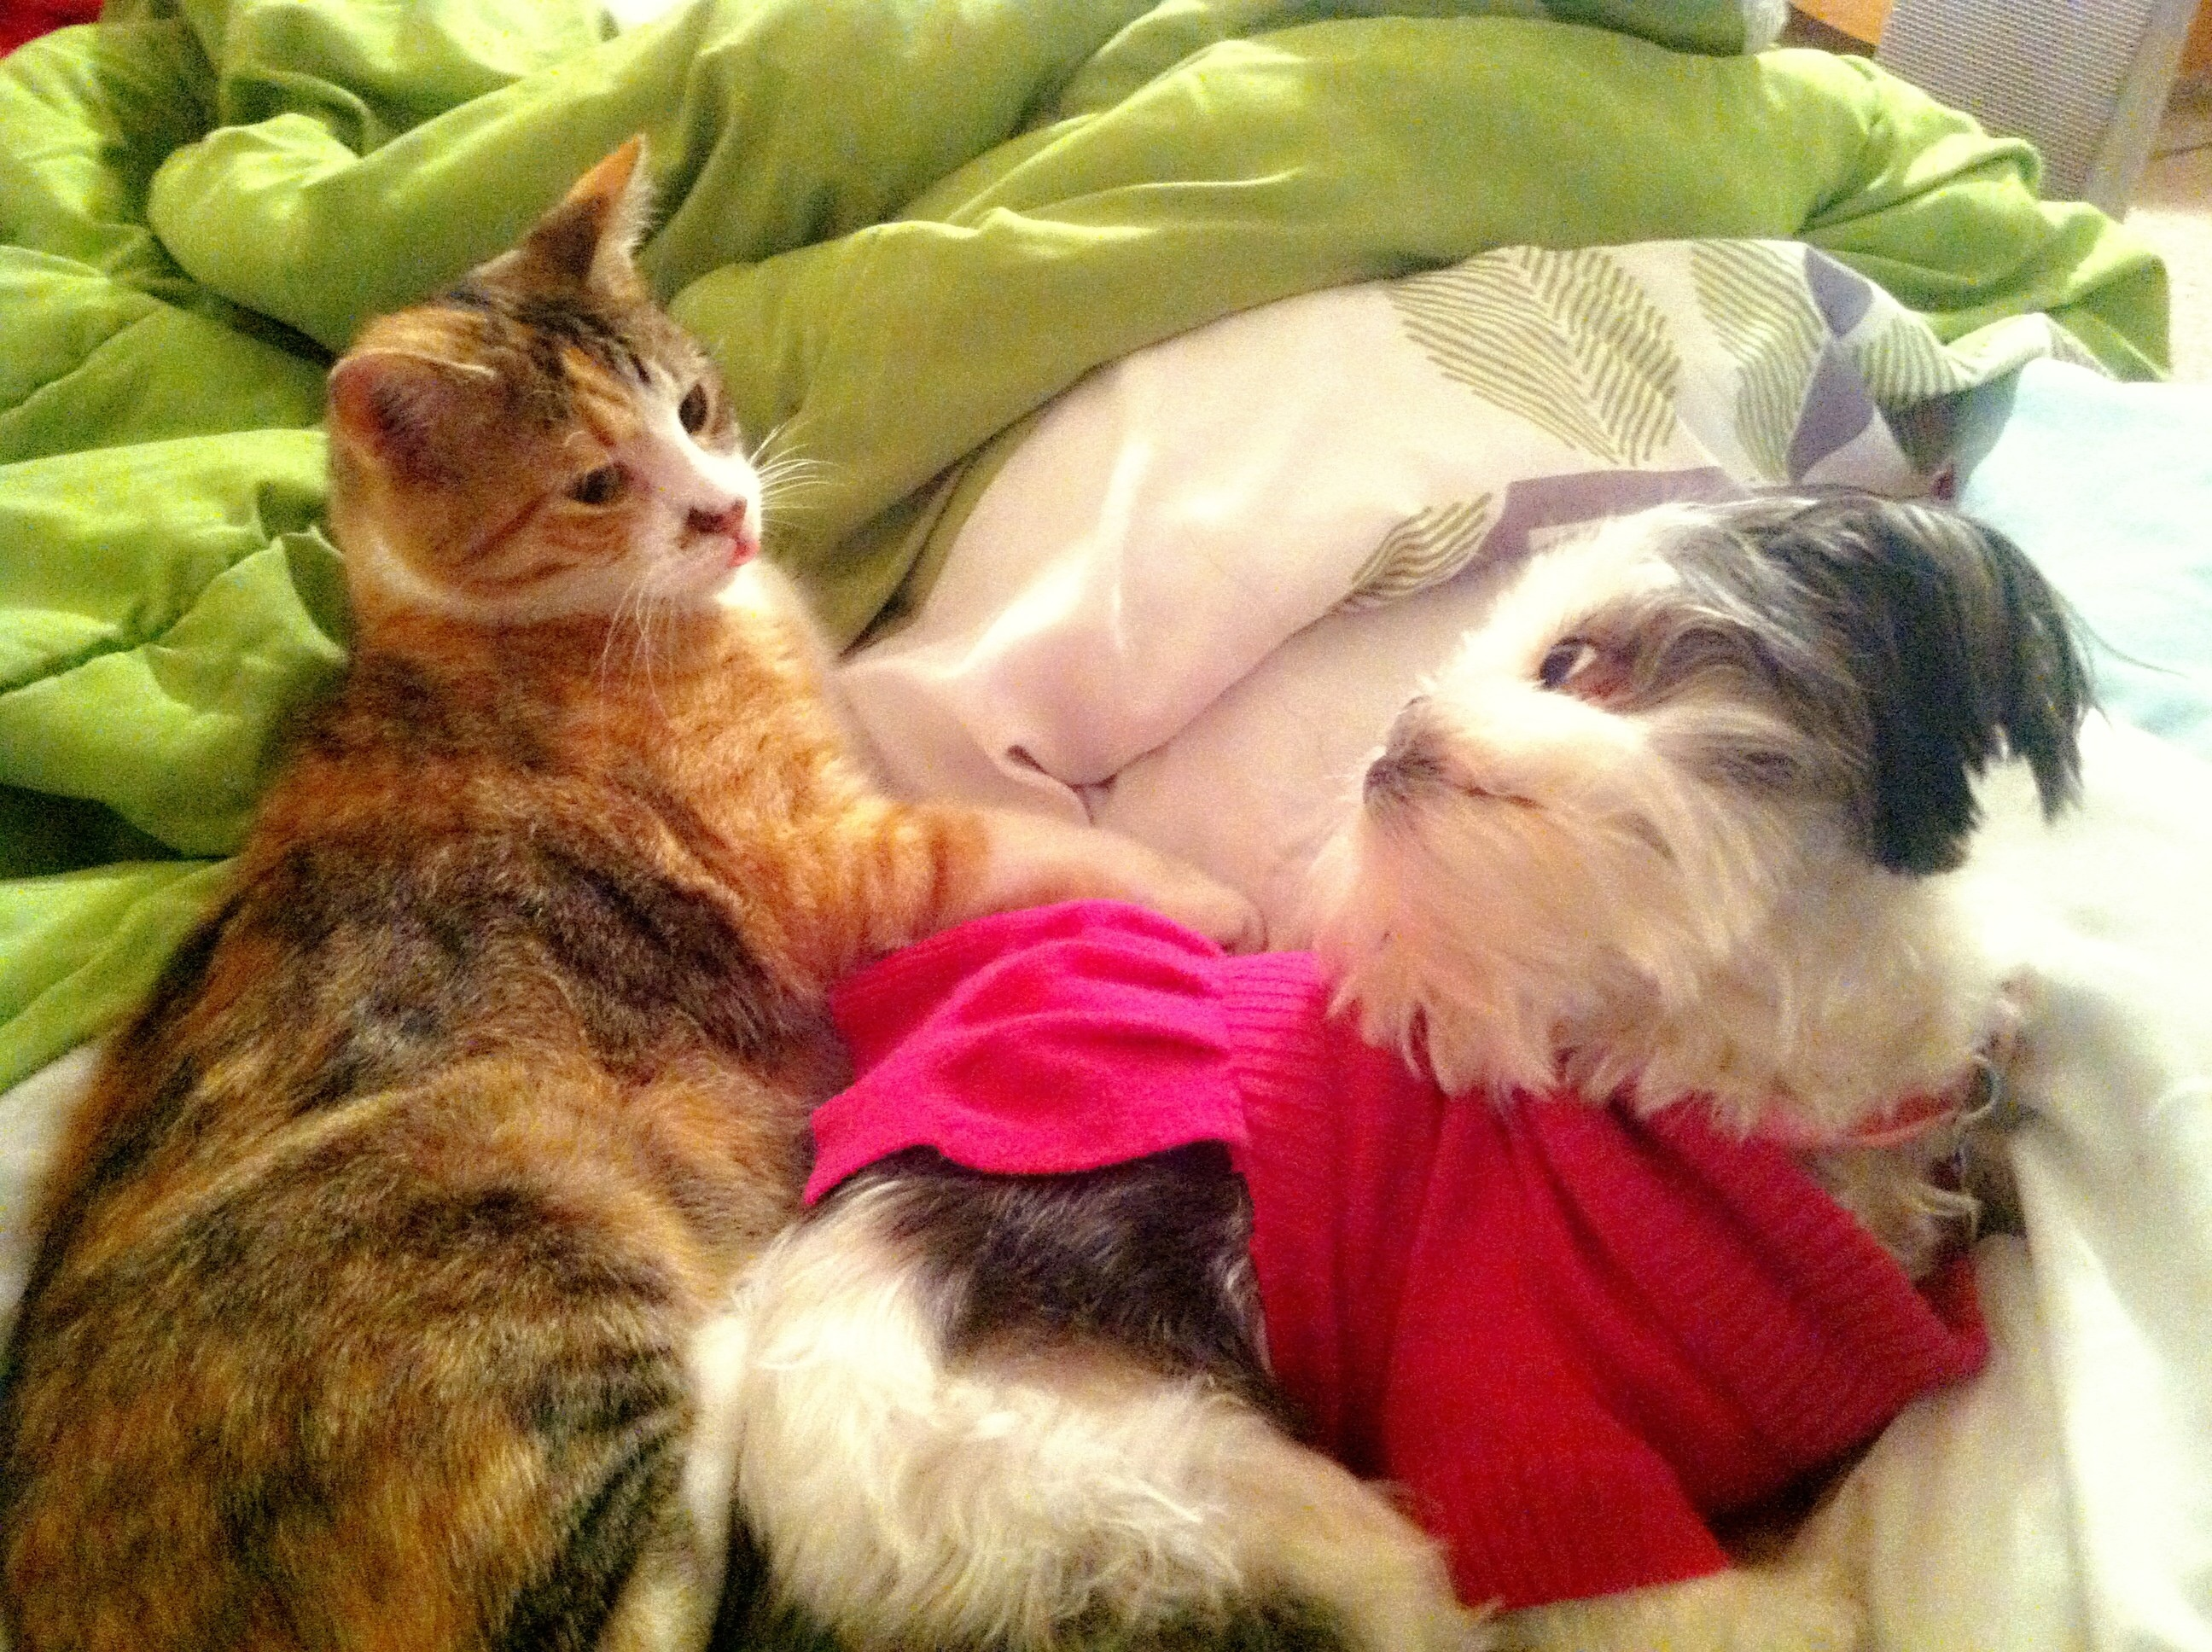 Shih tzu and calico cat